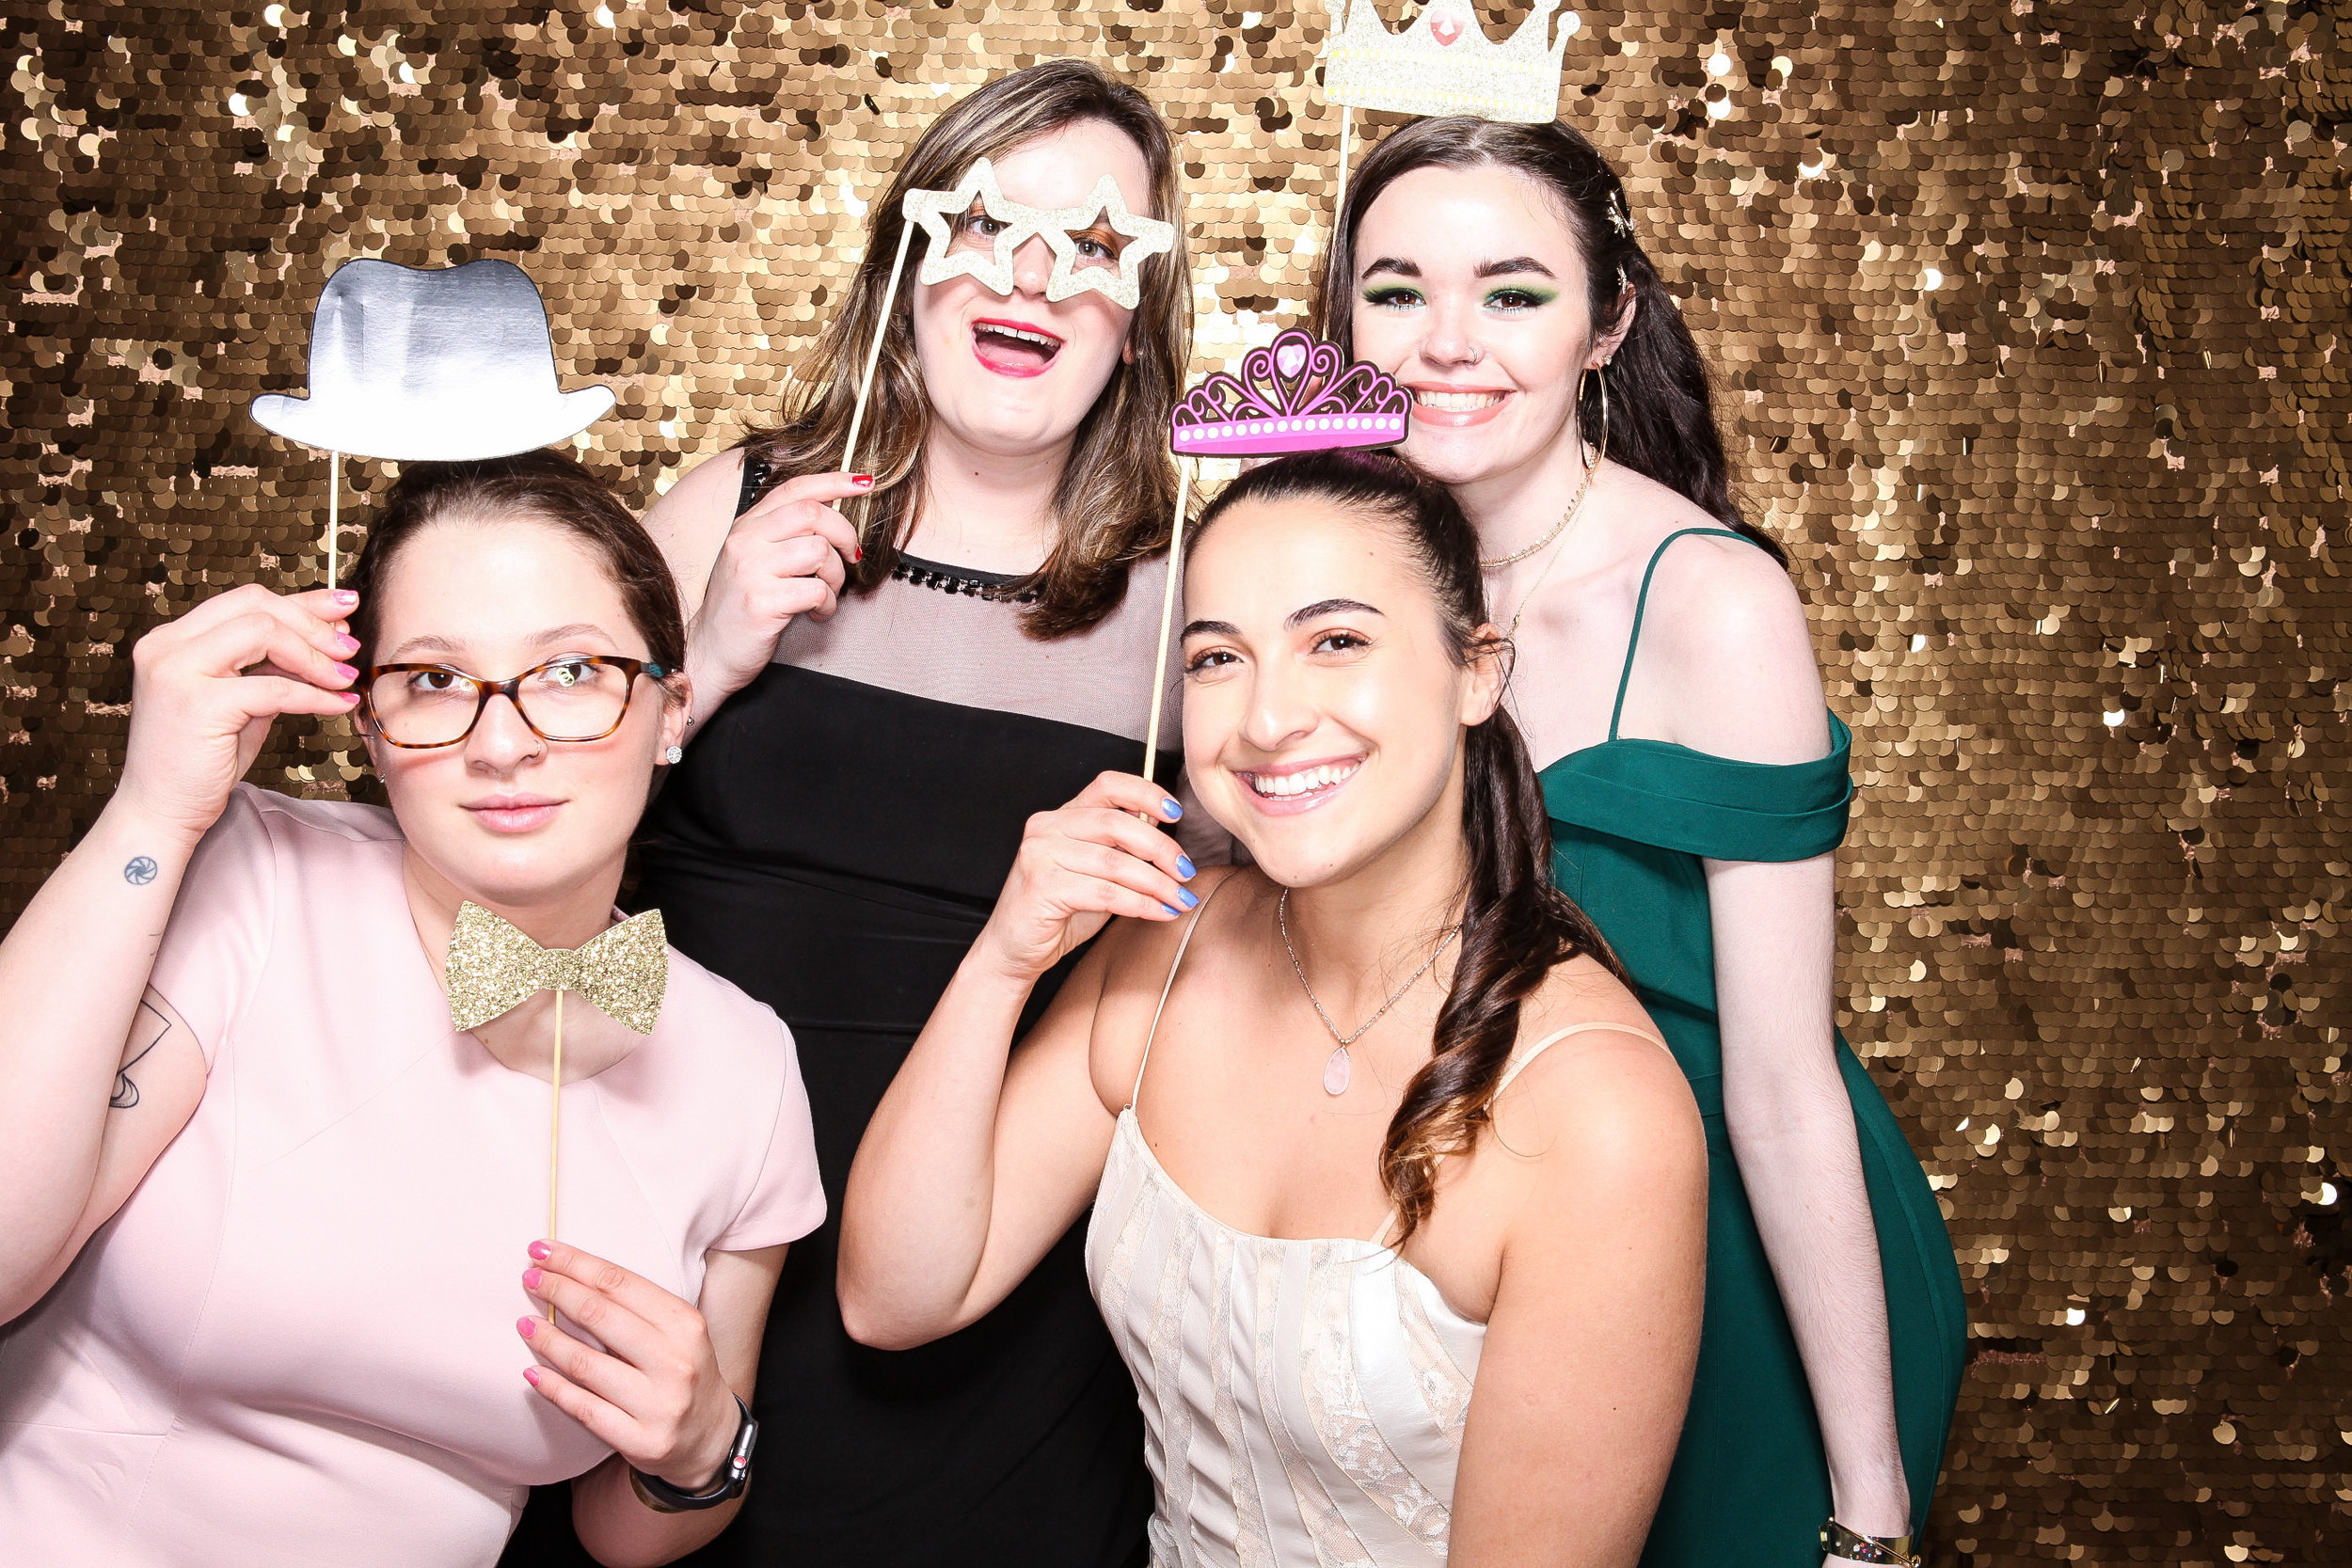 20190503_Adelphi_Senior_Formal-022.jpg